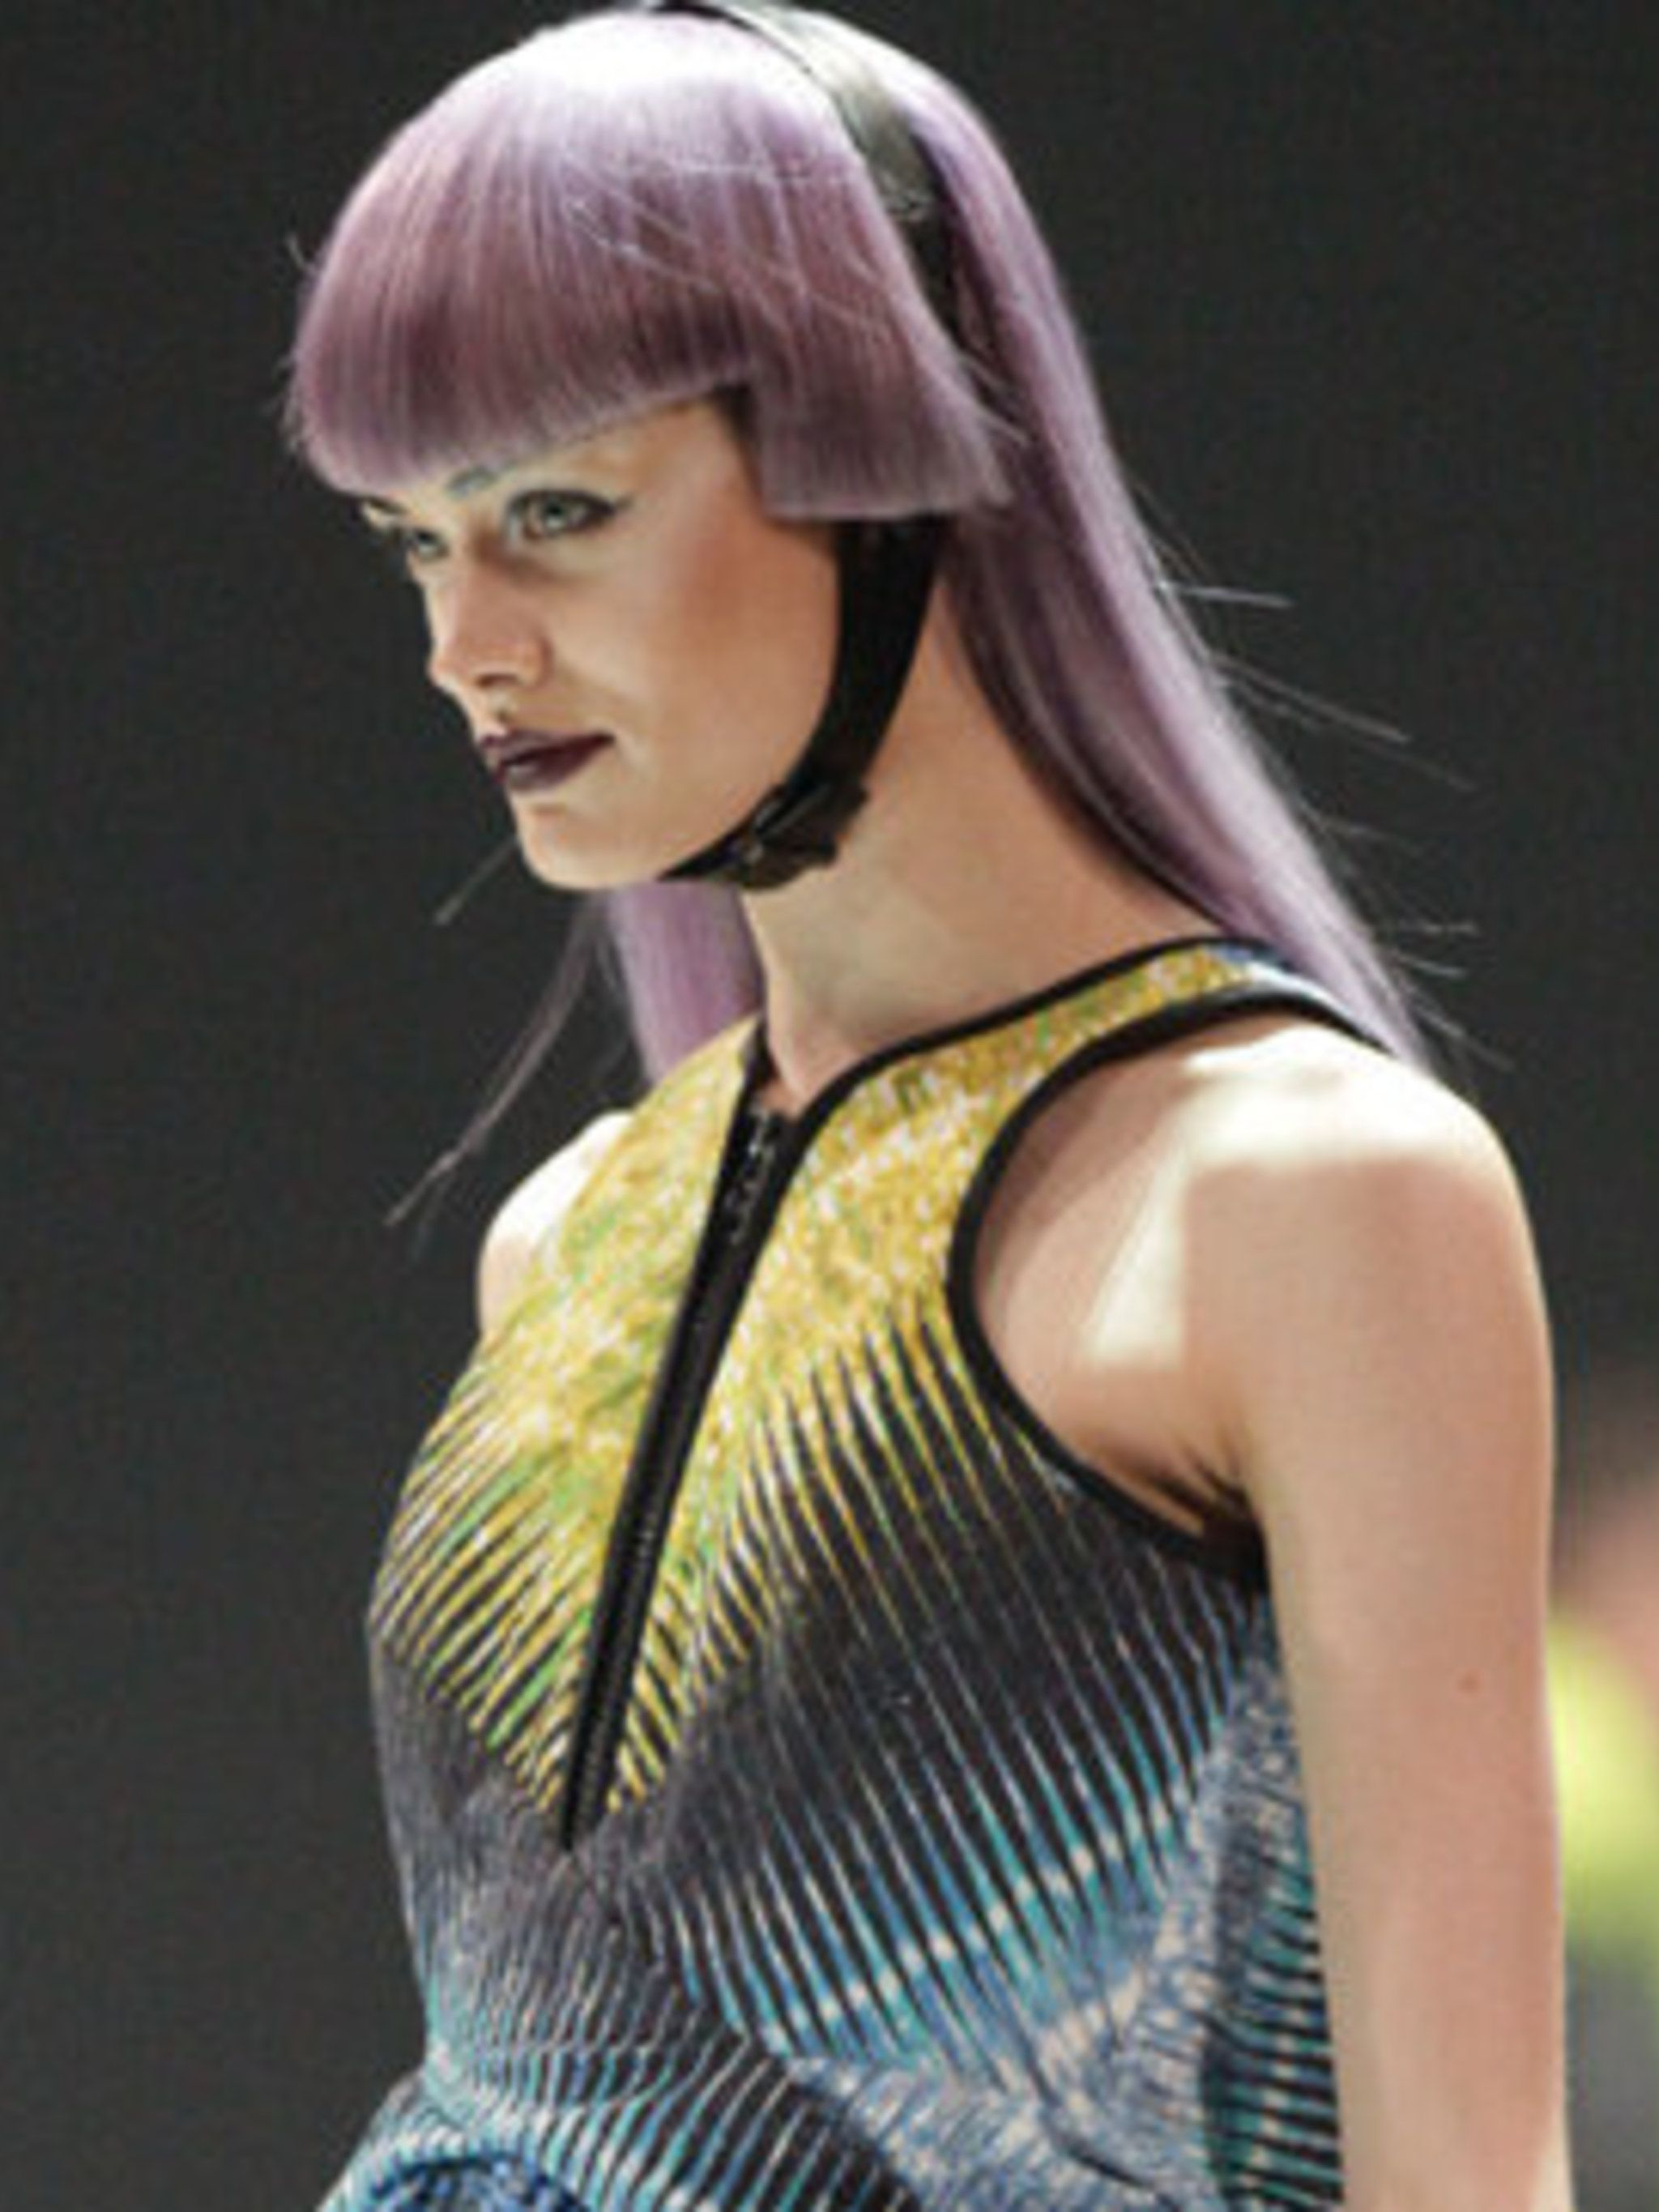 <p>A model on stage at the L'Oreal Colour Trophy Awards</p>